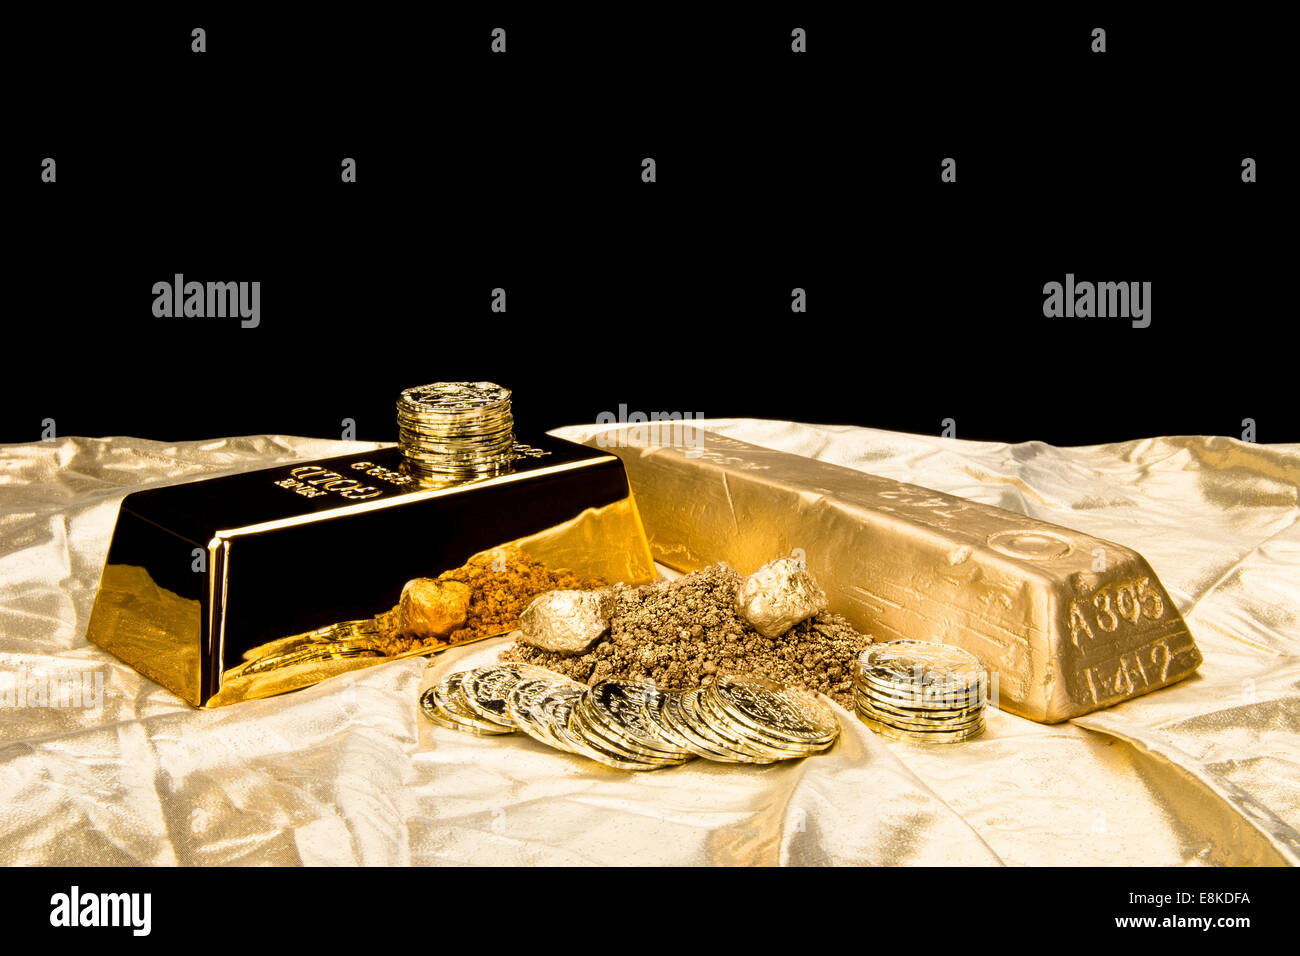 Gold in various forms including dust, nuggets, bar, ingot and coins isolated on a black background for placement - Stock Image